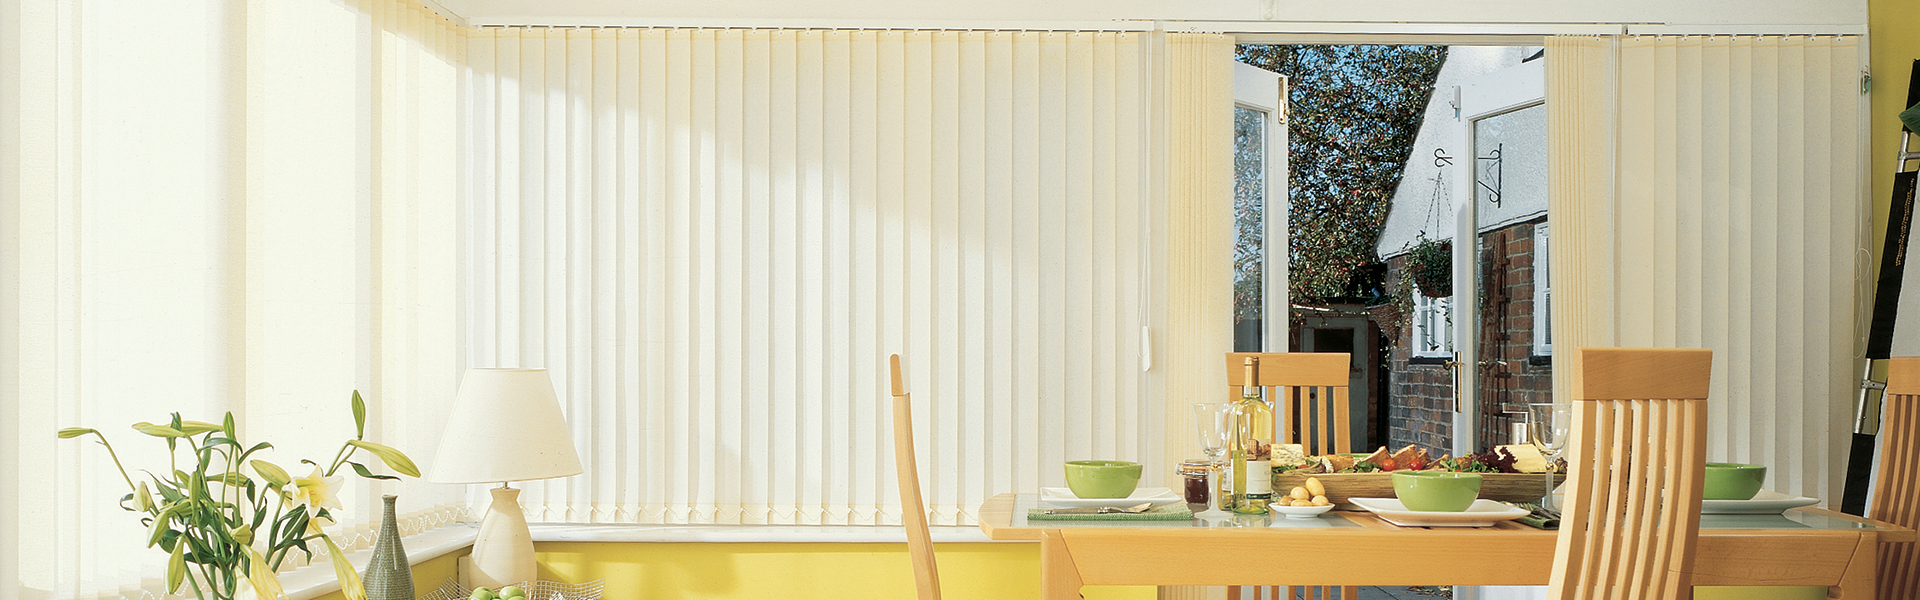 conservatory-window-blinds-hero-2